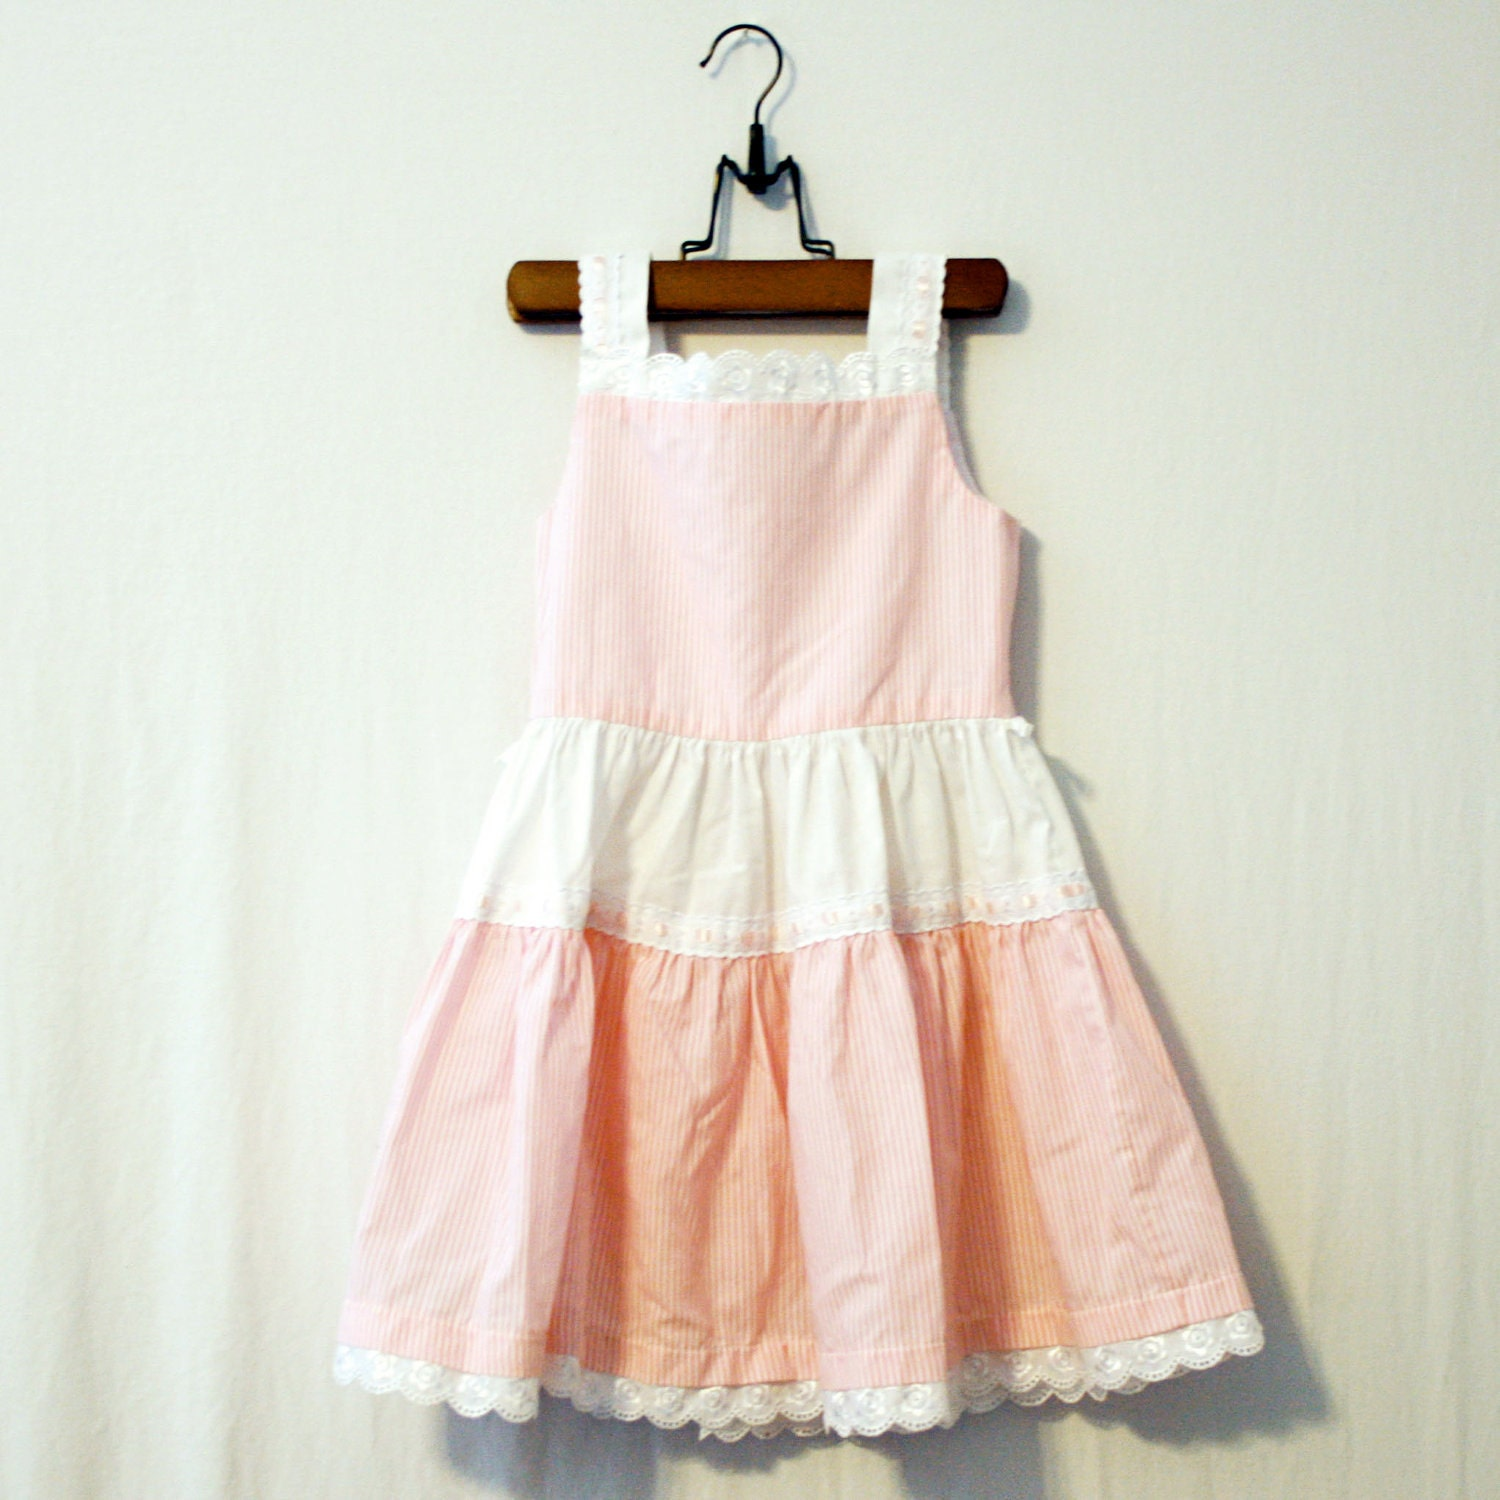 Candy // Vintage Dress for a Little Girl